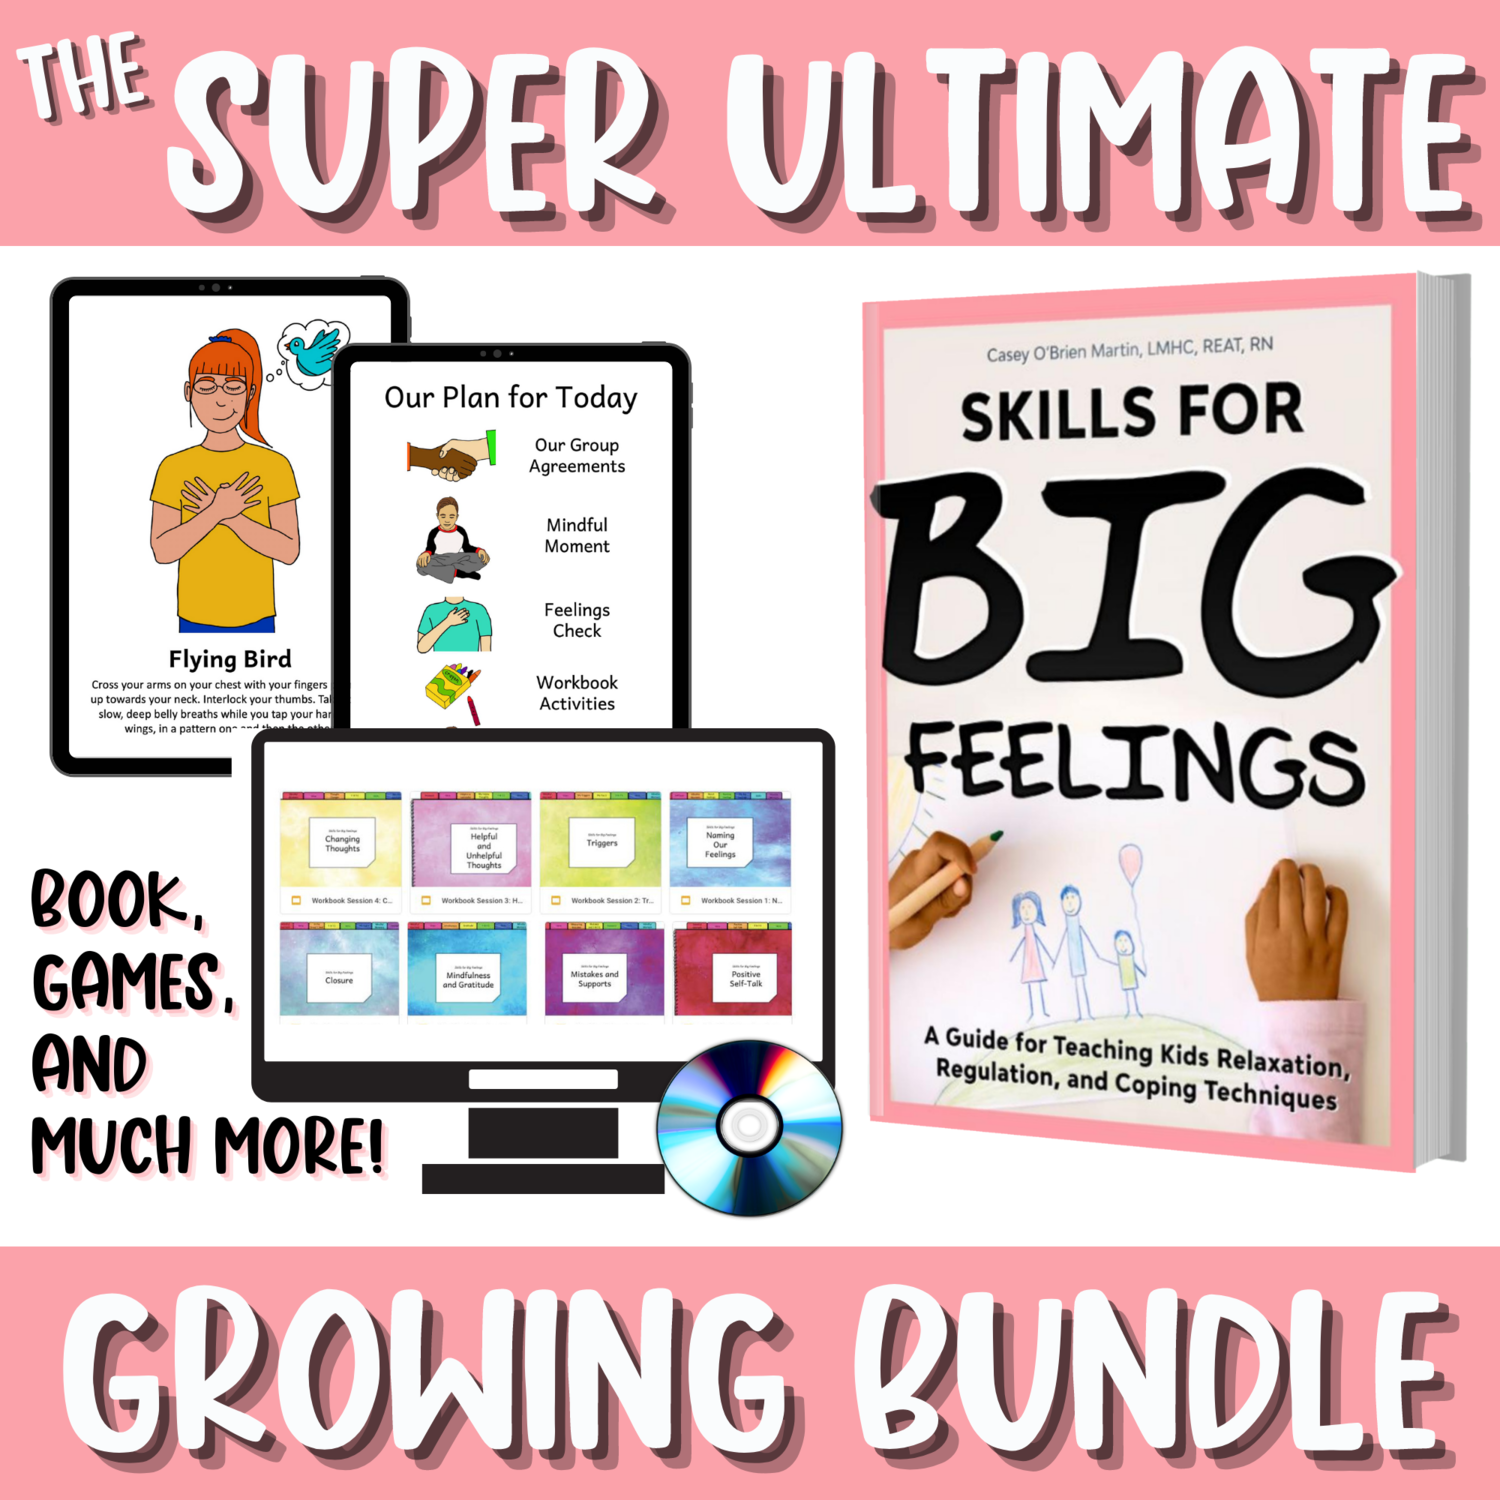 Paperback GROWING BUNDLE: Super Ultimate Skills for Big Feelings, Bonus Bundle + All The Games and Supplements!